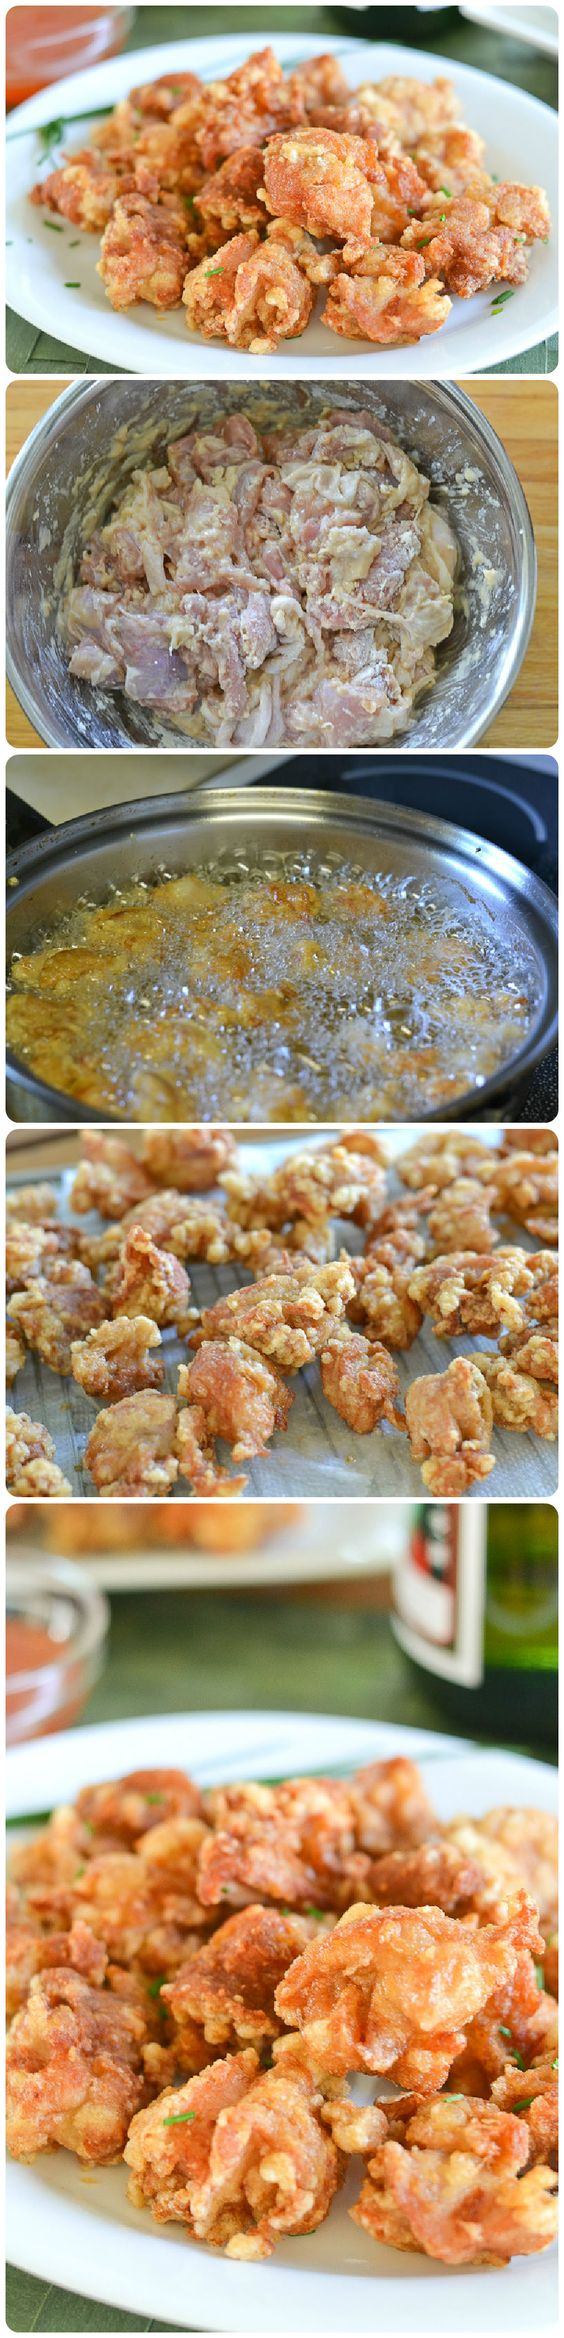 Chicken Kara-age (Japanese Style Fried Chicken)